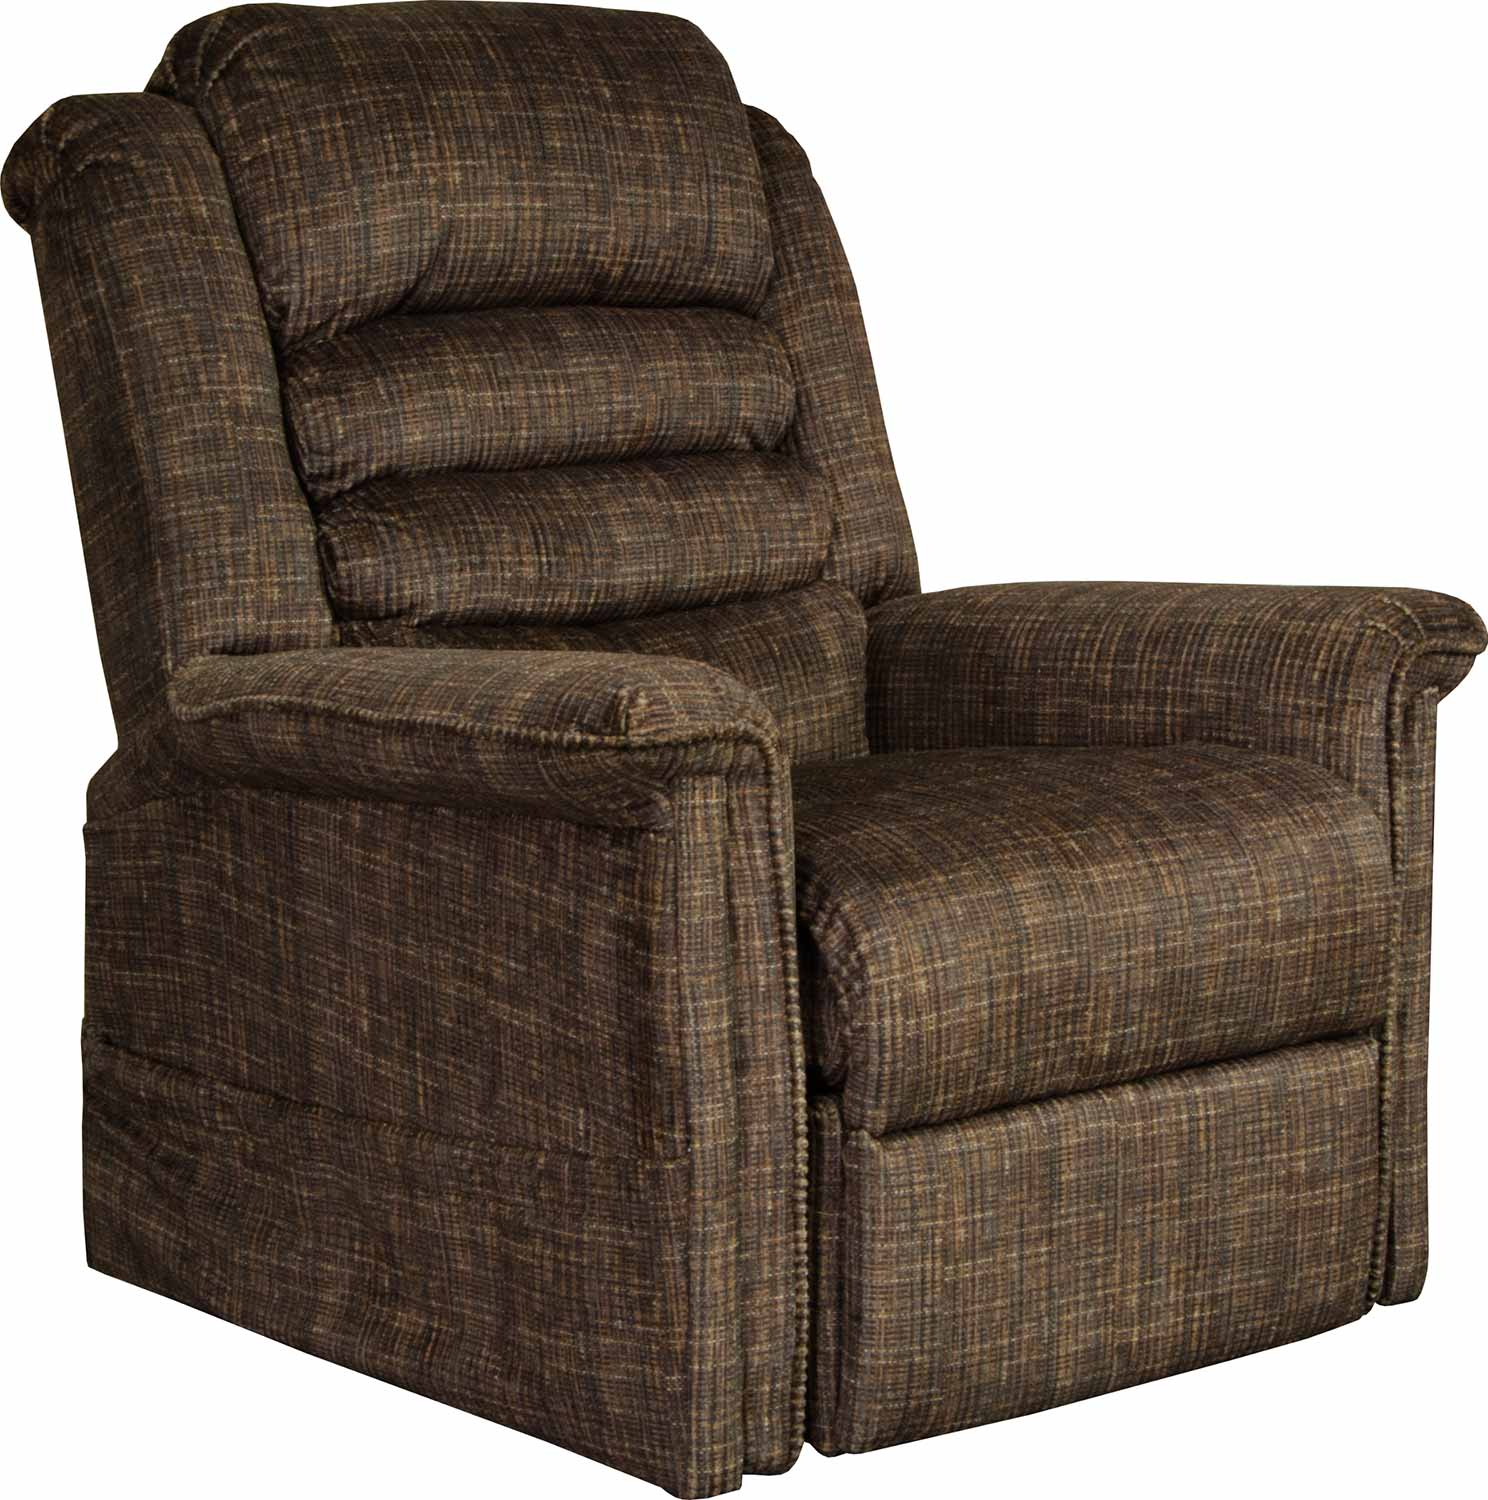 CatNapper Soother Power Lift Recliner Chair - Chocolate